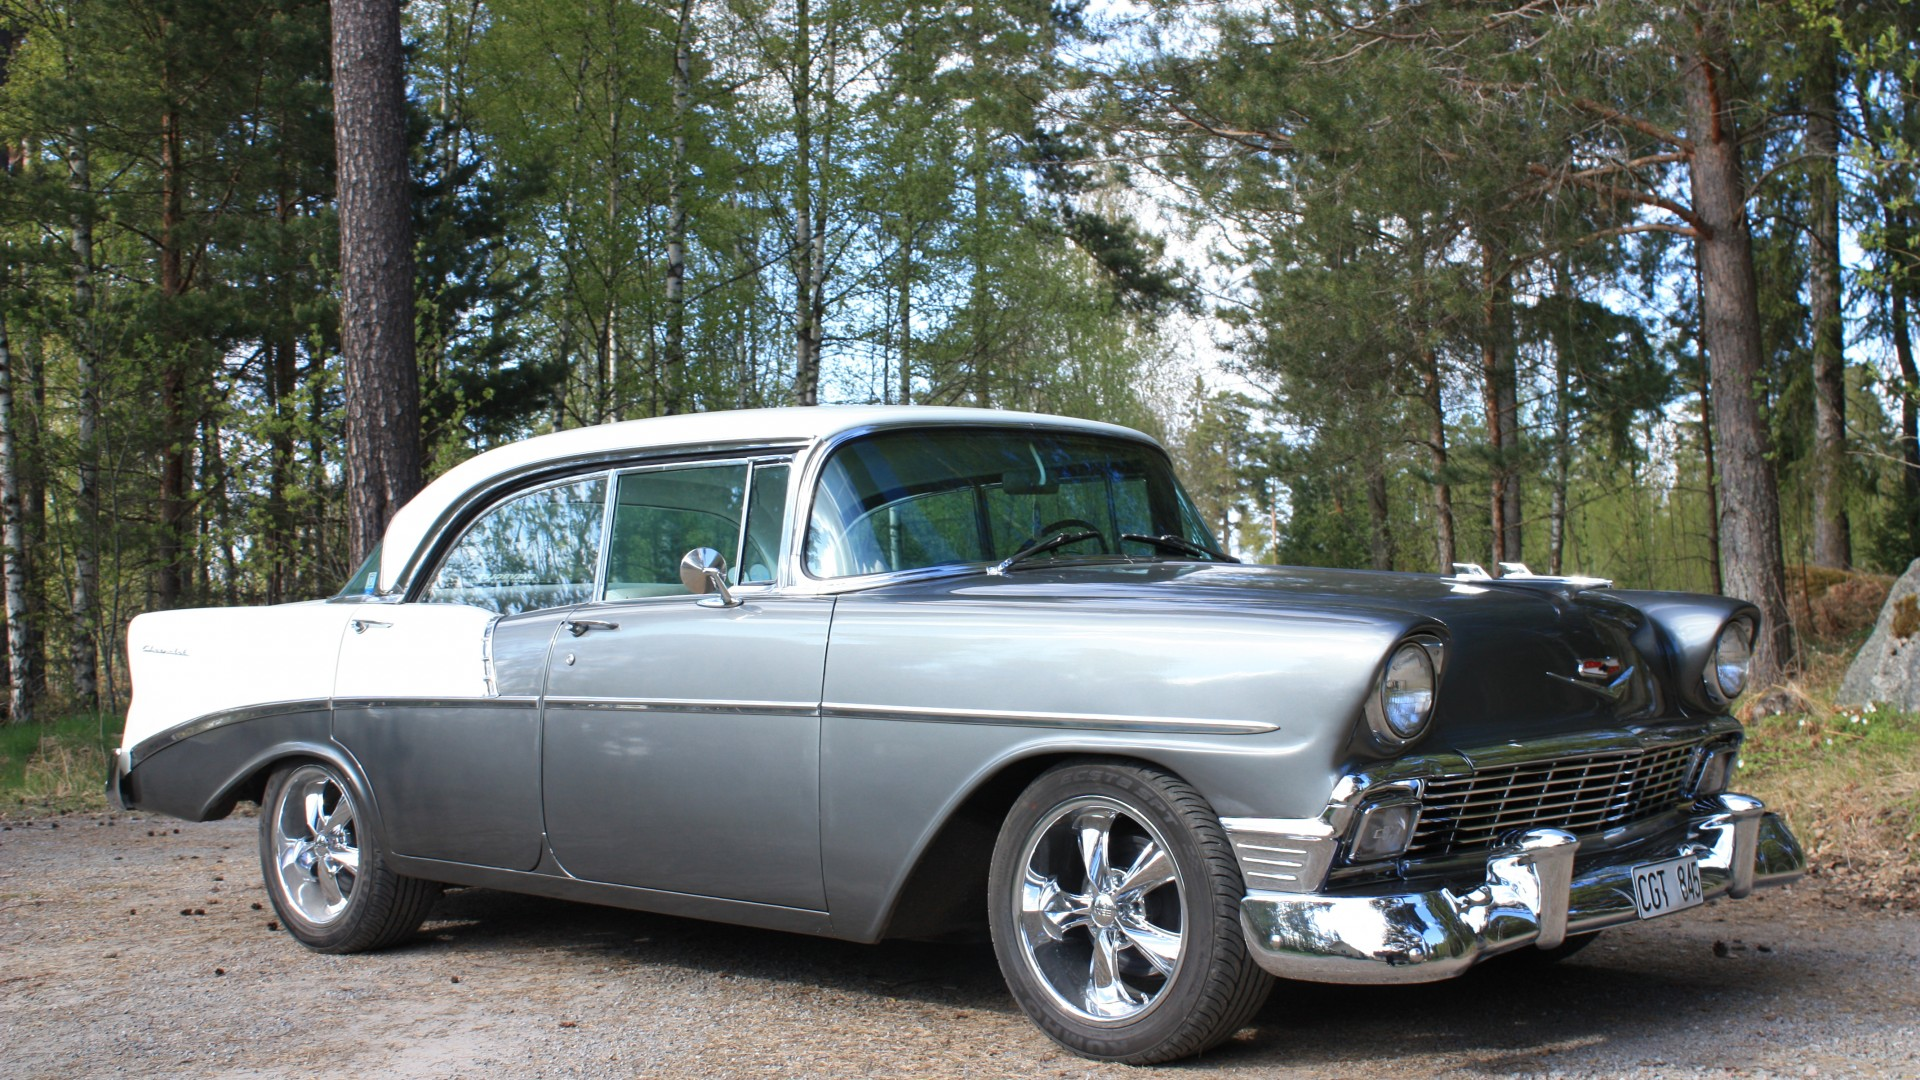 Chevrolet 210, Two-Ten, classic cars, Chevrolet, Chevy, 1956, sedan, blue, forest (horizontal)